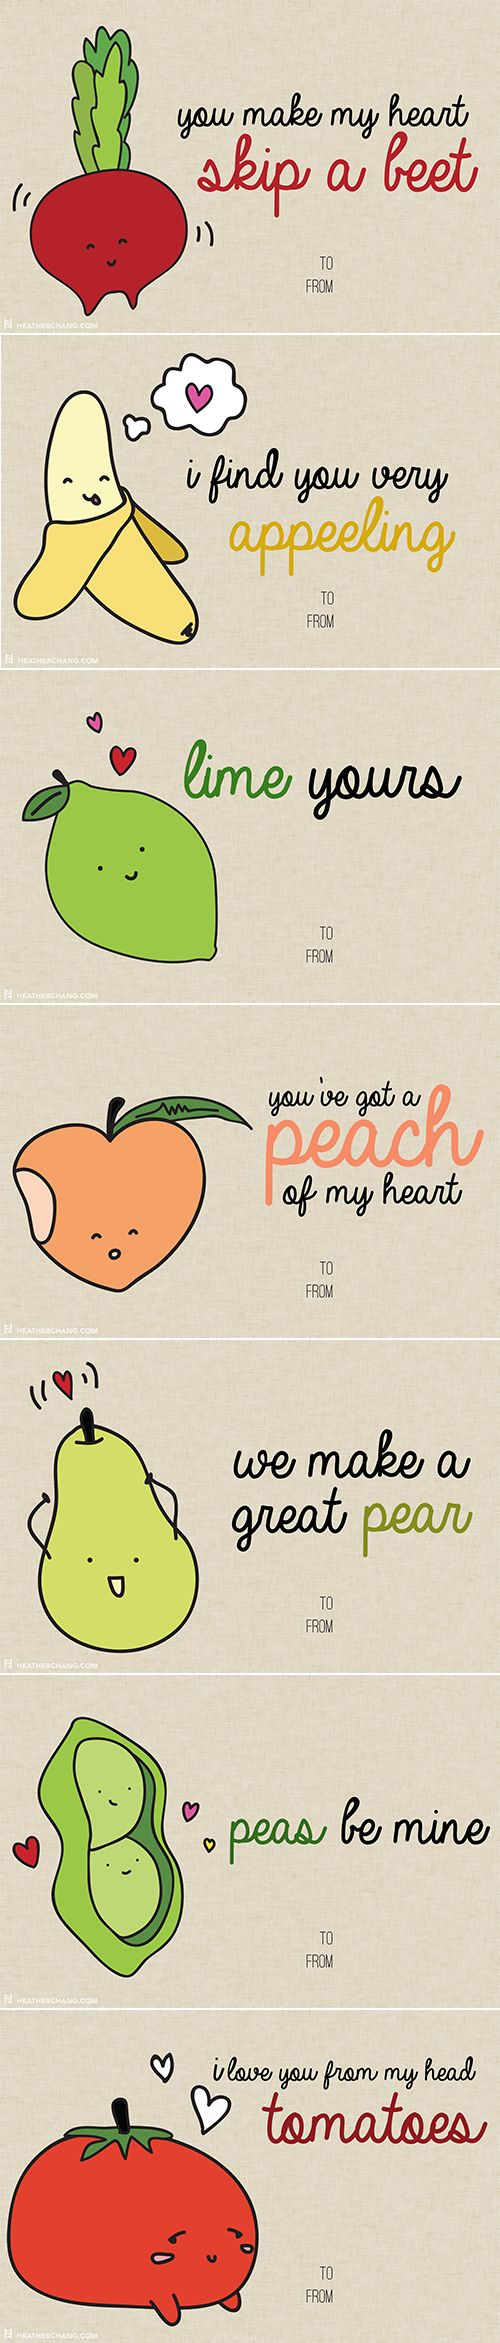 funny pics, cheesy cards, food puns, funny pick-up lines